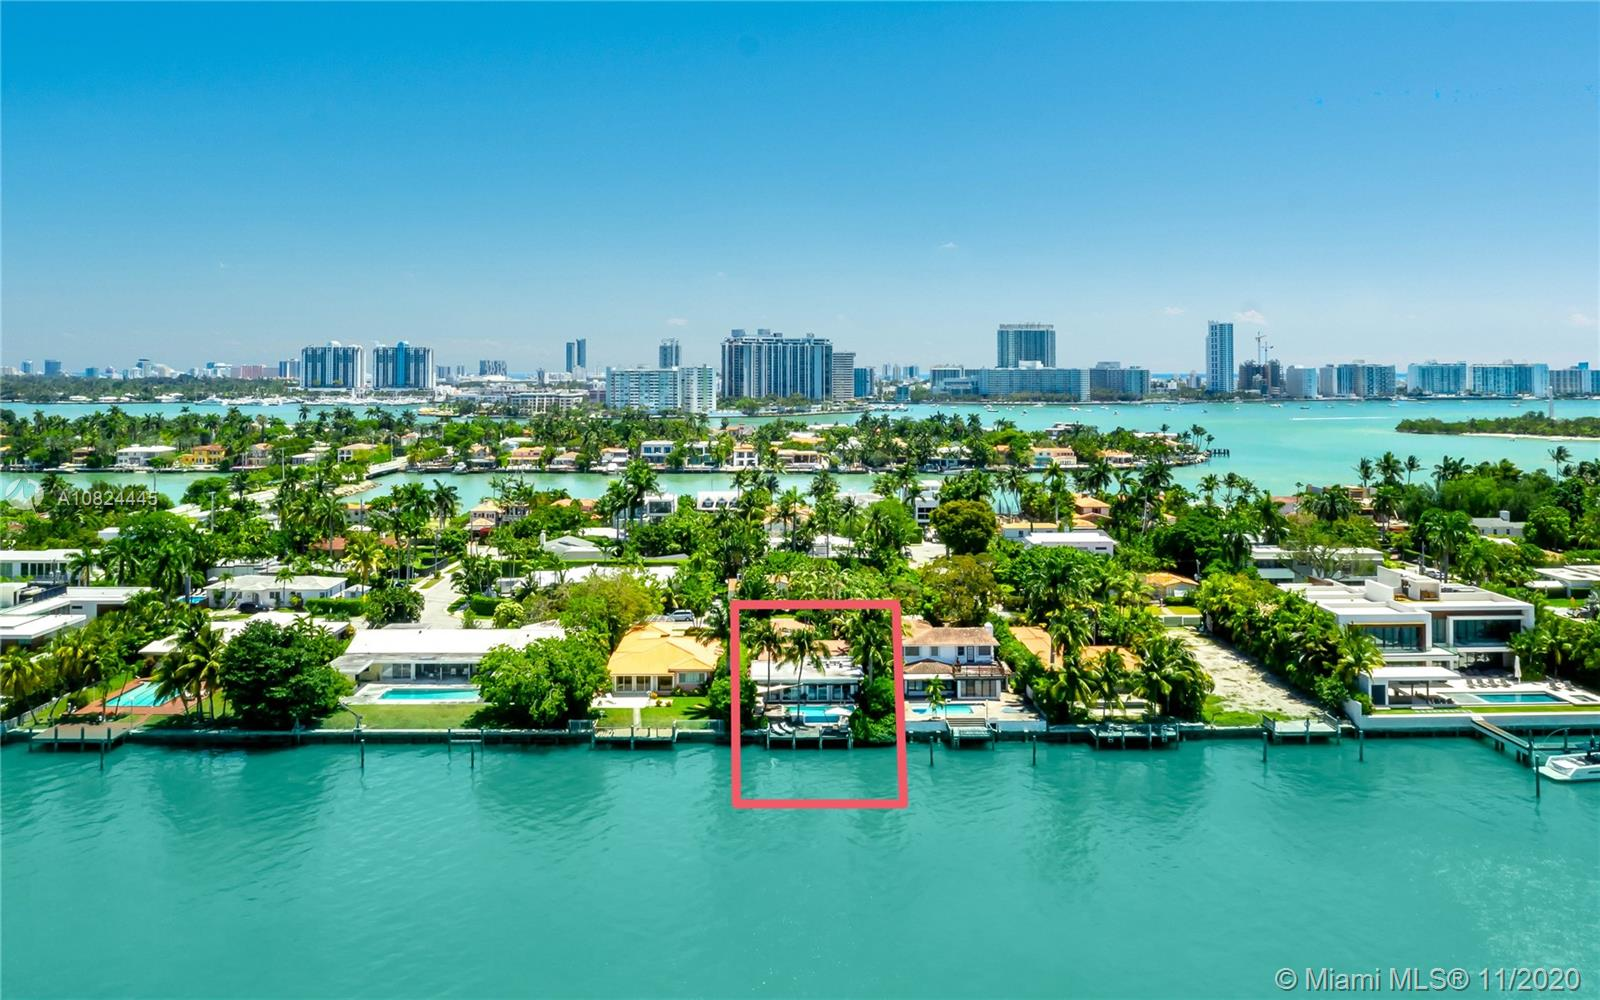 DREAM VIEW OF MIAMI SKYLINE FROM THIS RENOVATED WATERFRONT VILLA WITH A BOHEMIAN VIBE! Move right in or Build NEW on this PRIME 10,500 SF LOT with 60' on the Water. Bayfront Negative-edge Pool wrapped with Ipe Wood Deck. 4 Bedrooms + 4 Baths + Study in Open Floorplan for Hanging Out & Relaxing over Amazing Sunset Vistas. Hardwood floors; Renovated European Kitchen in dove grey + white Marble Countertops, Subzero Refrigerator, Wine Cooler & Gas Cooktop. Raffia & Linen textured wall coverings exude a wonderful Beach House Atmosphere. Romantic Pathway Entry through Tropical Lush Gardens. Walled & Gated for Privacy and Security. Parking for 4 Cars. Enjoy Young & Hip Venetian Islands just blocks from The Standard Spa & Hotel, Sunset Harbour, Lincoln Road.